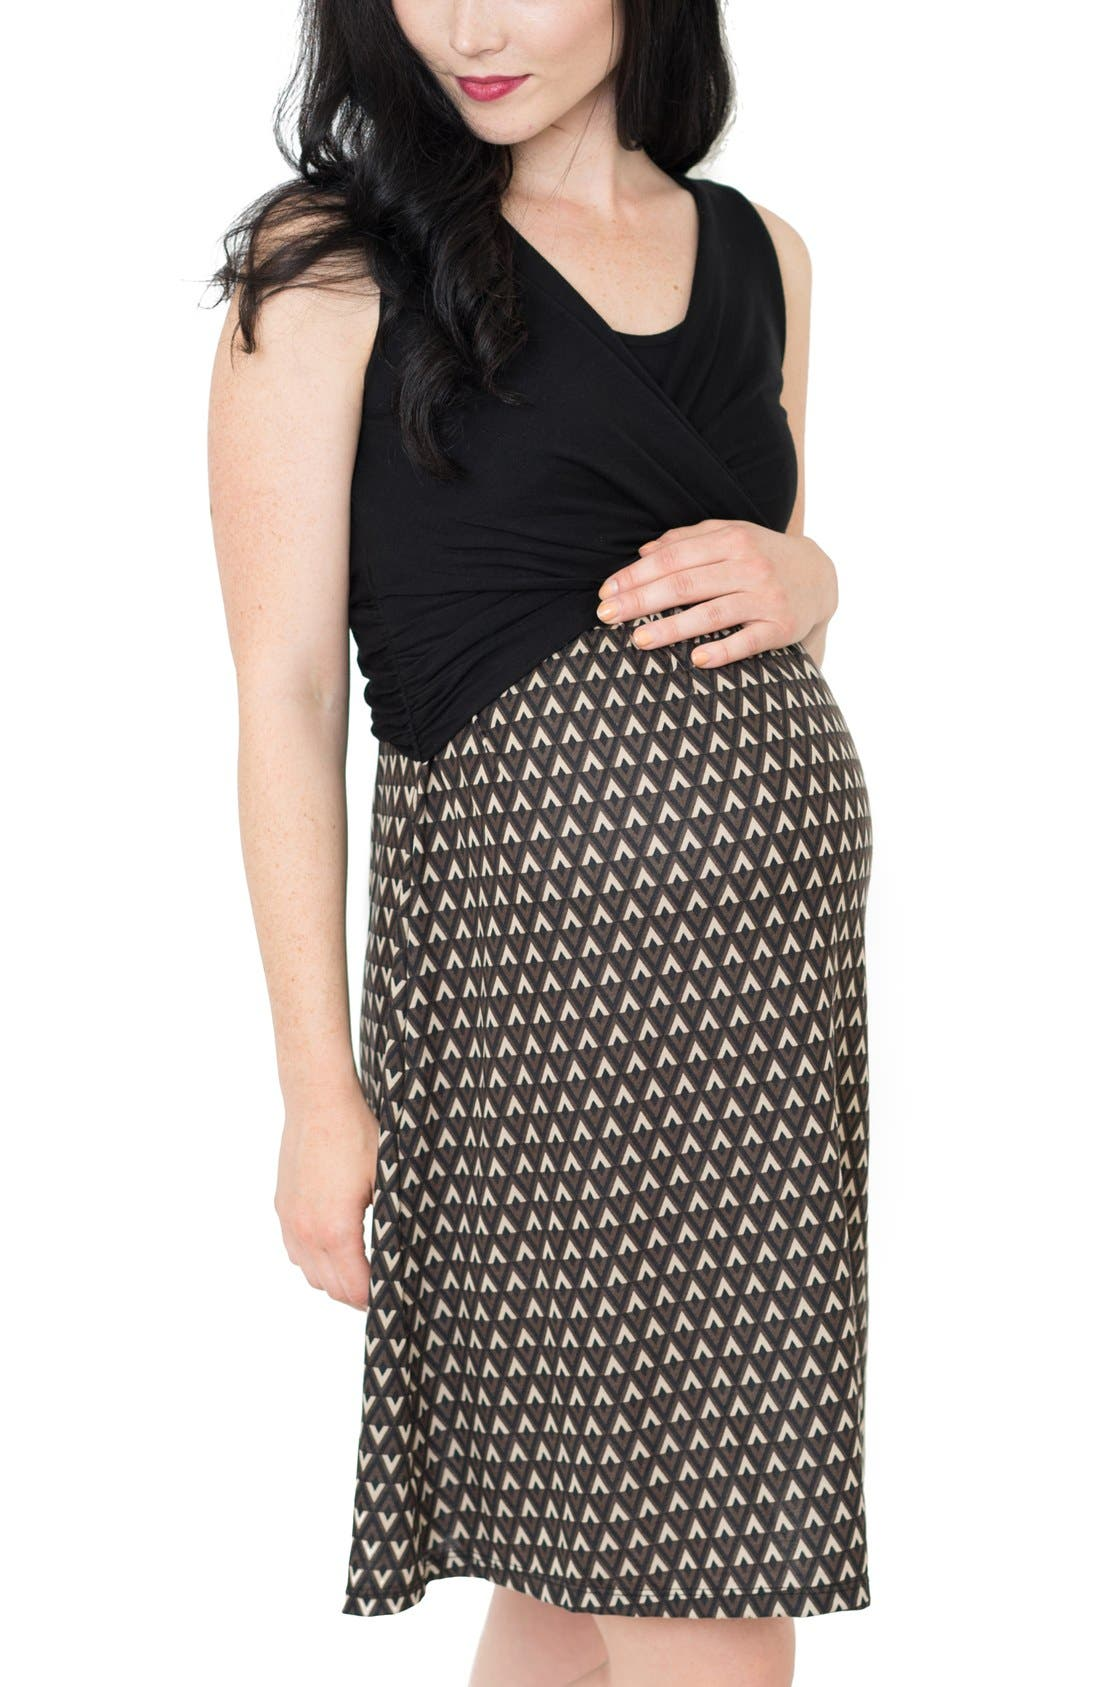 'Lela' Nursing Maternity Dress,                             Main thumbnail 1, color,                             BLACK TRIANGLE PRINT